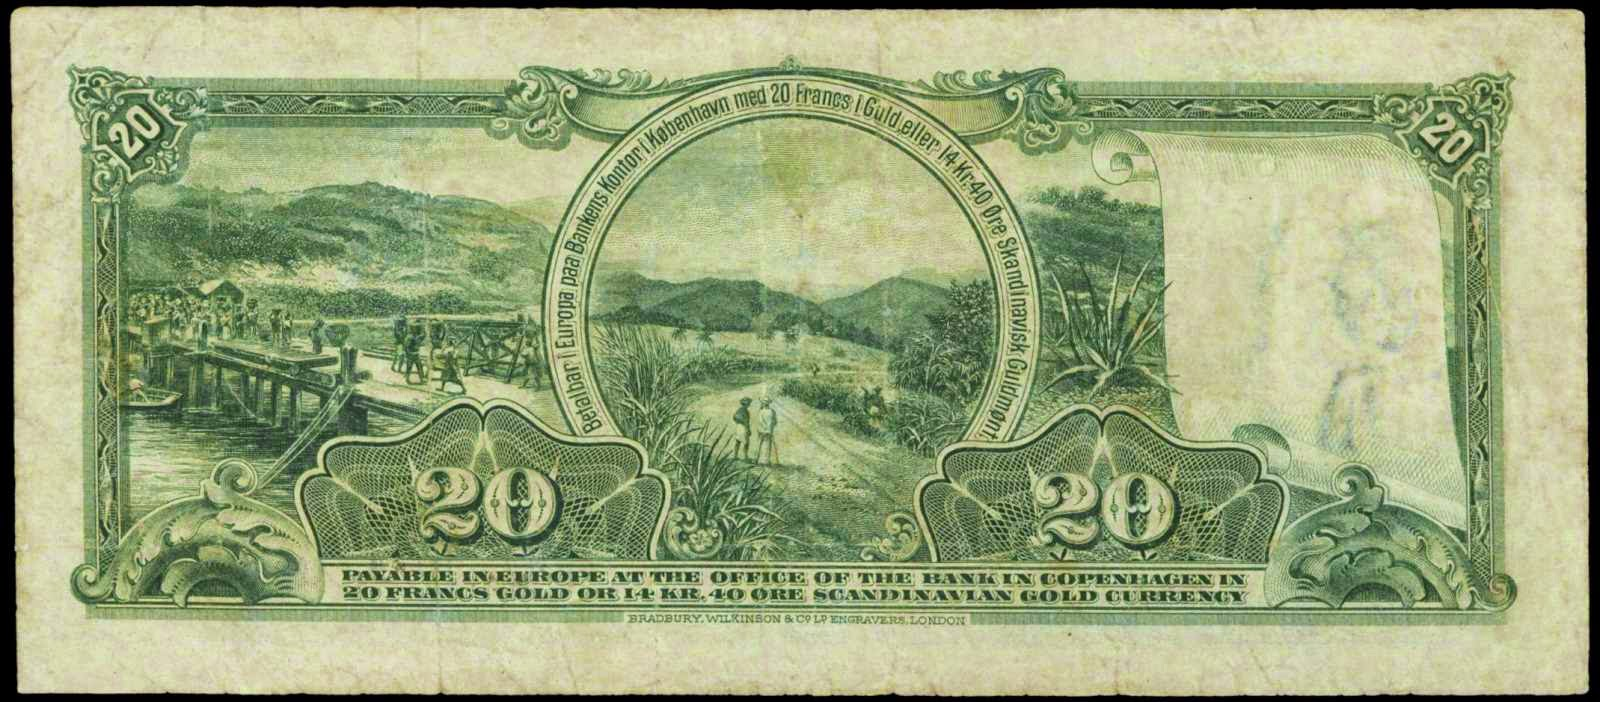 Danish West Indies banknotes 20 Francs